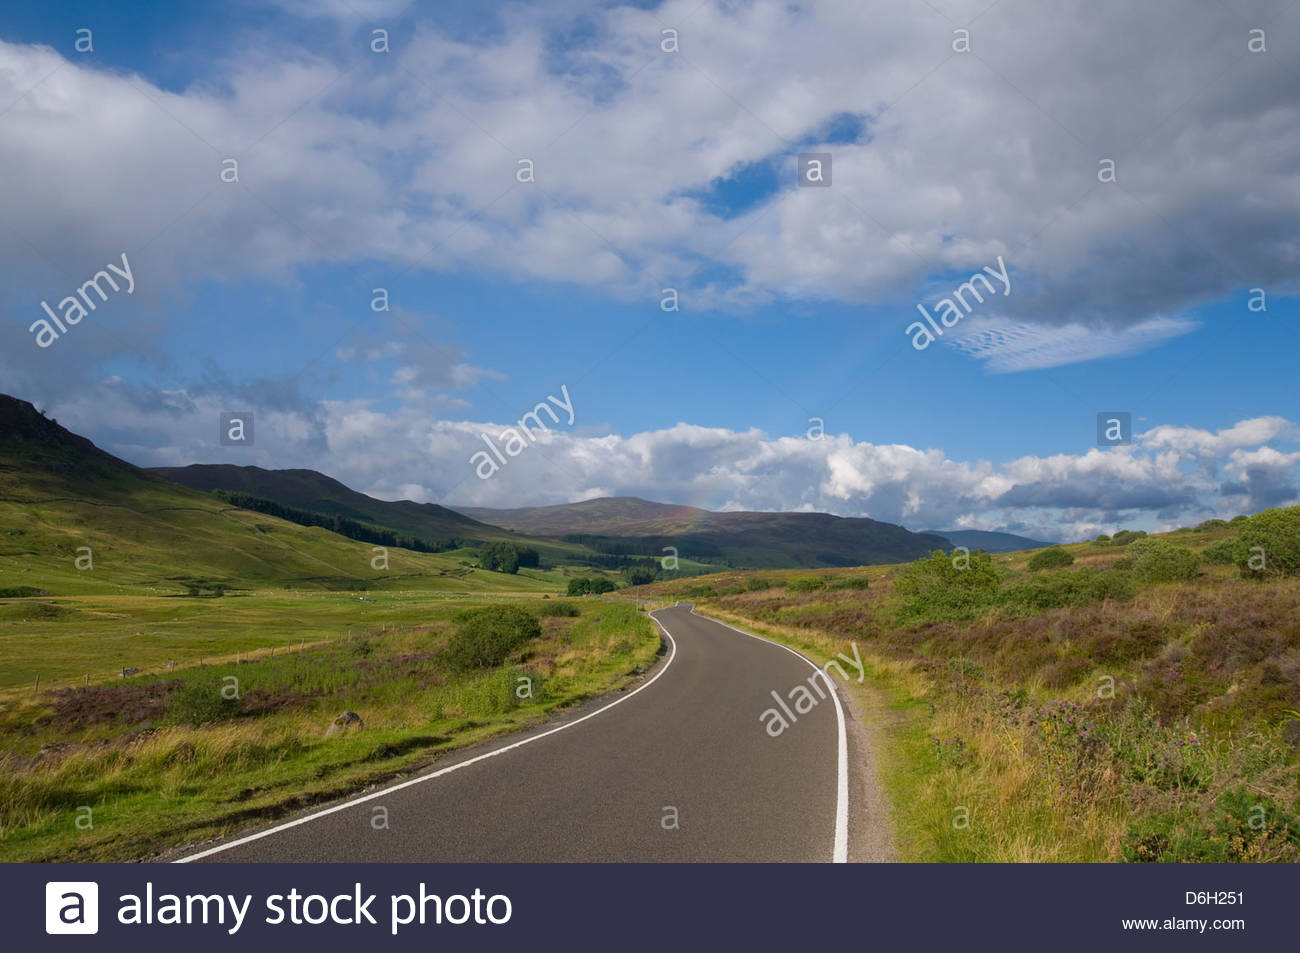 Empty road near Pitlochry Scotland U.K. - Stock Image